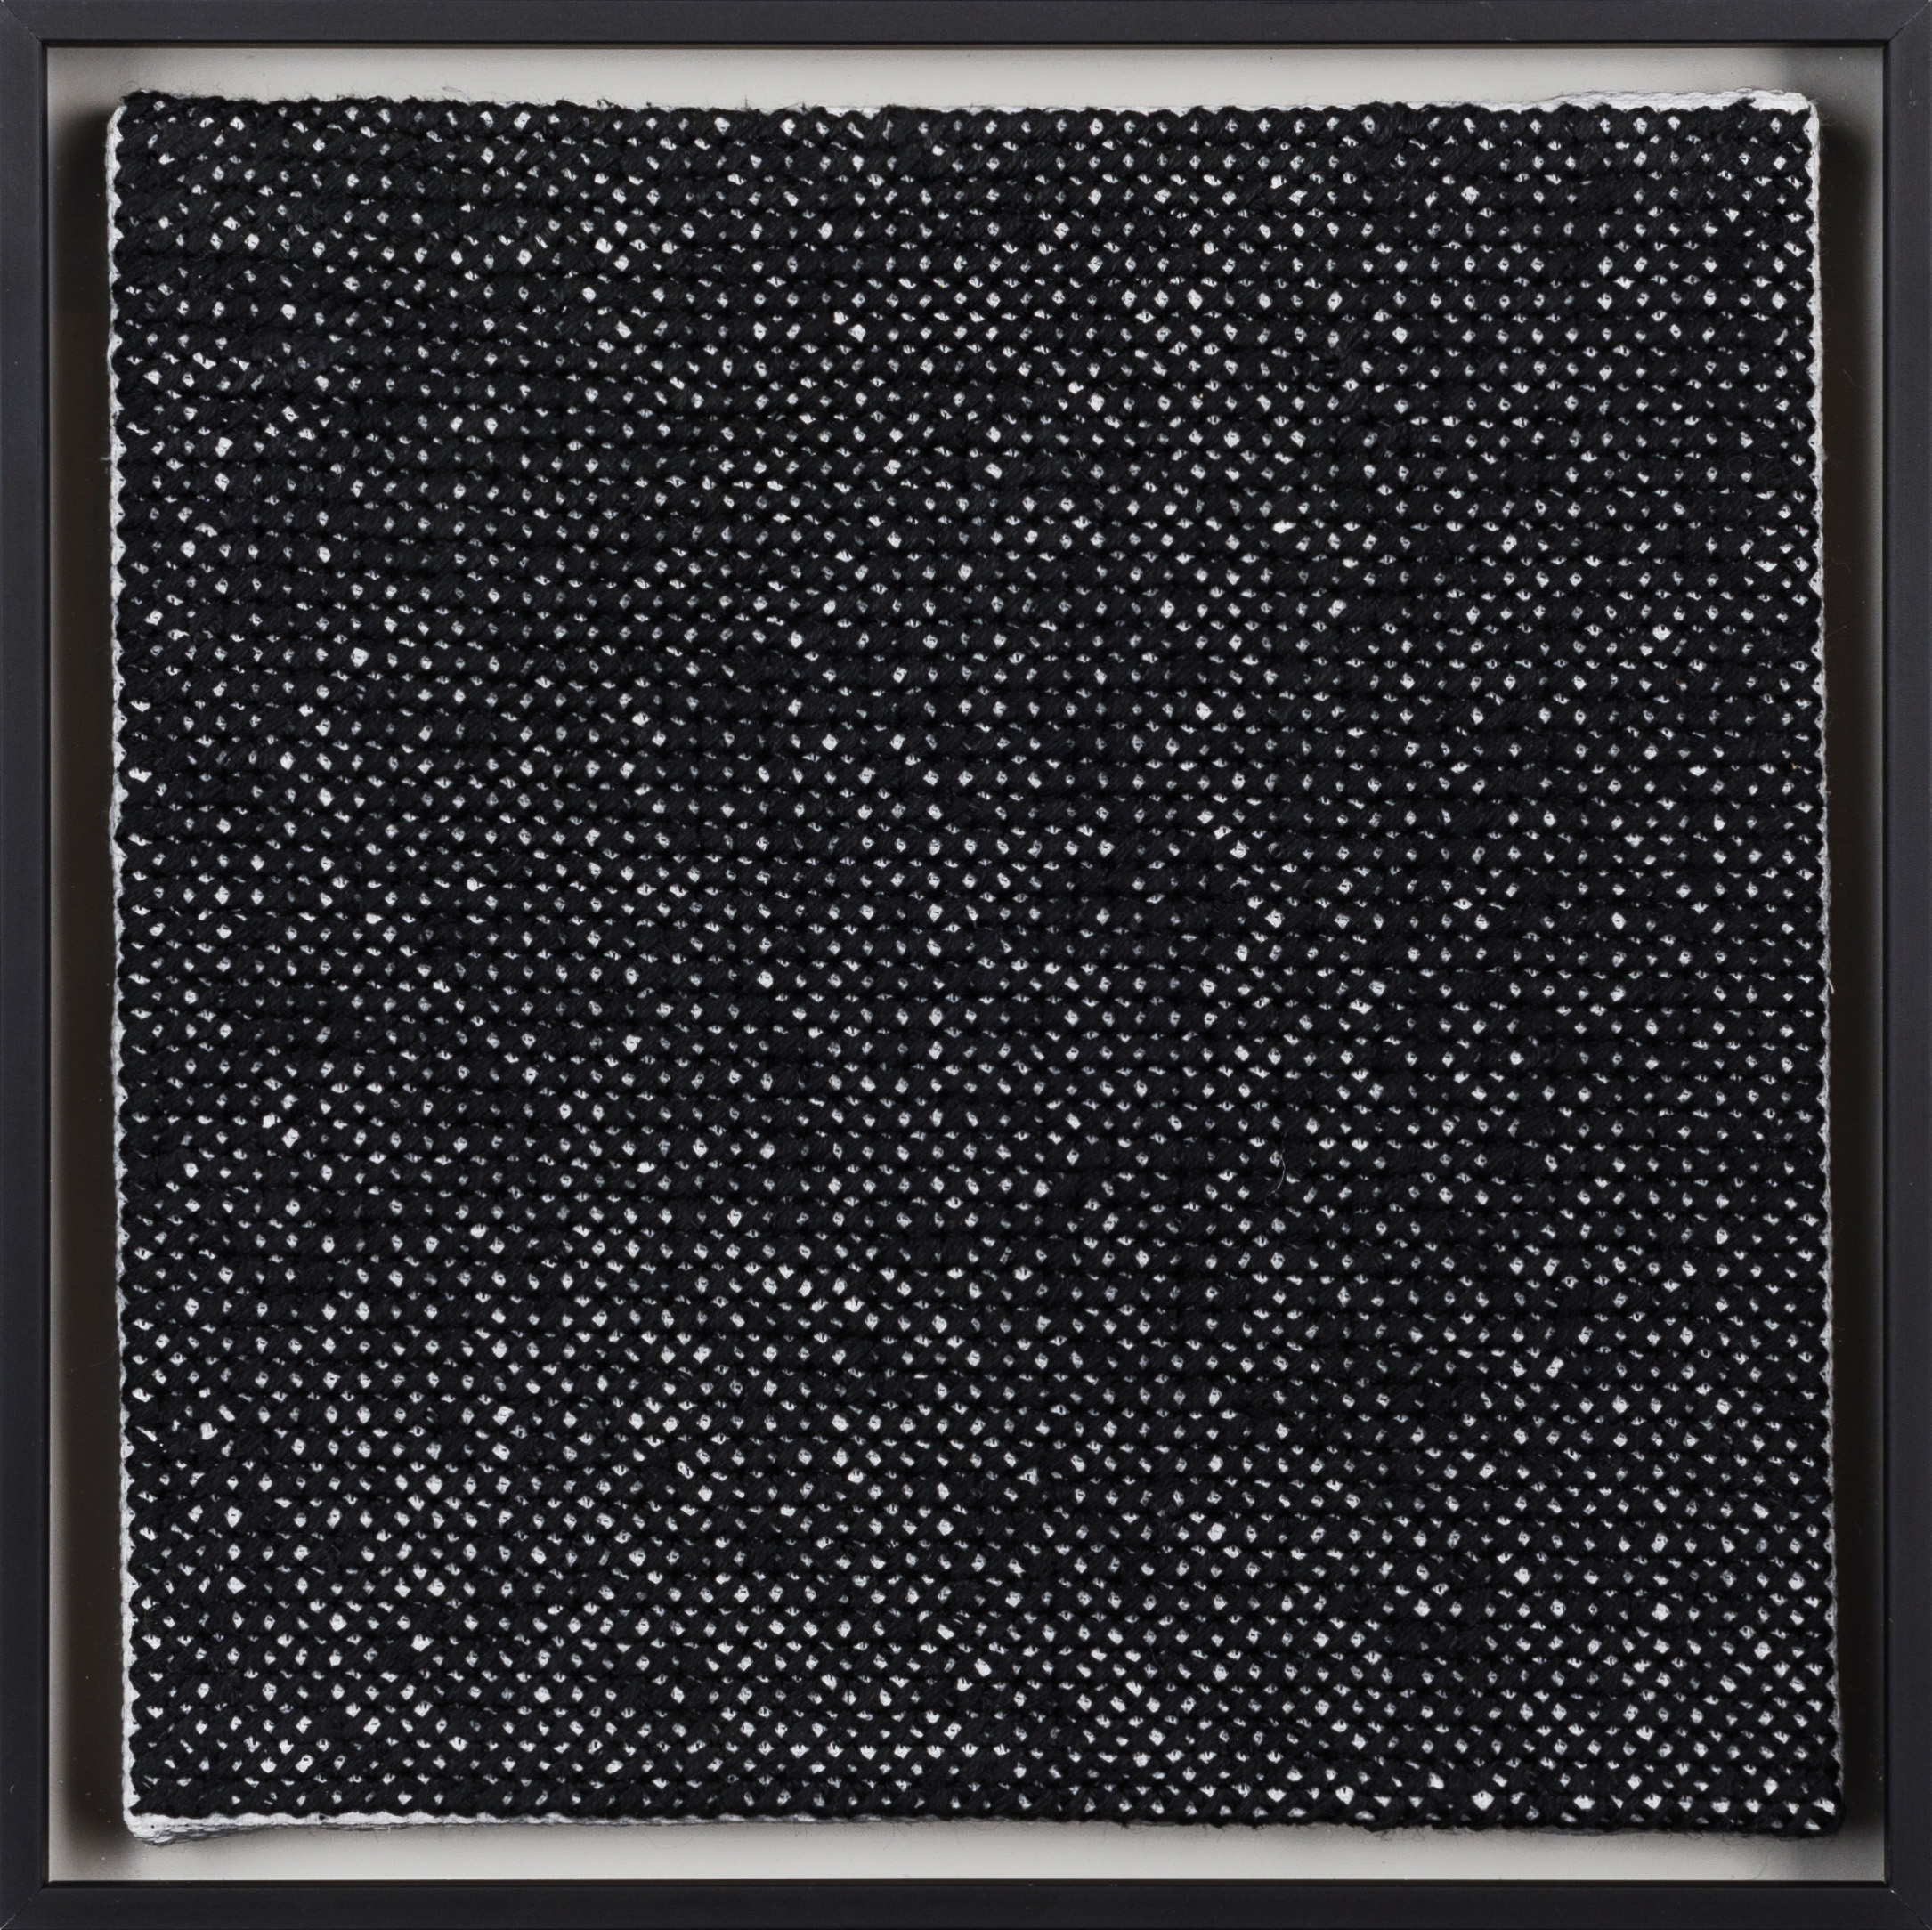 PIERRE LE RICHE. Black on white, 2016. Cross-stitch embroidery on Aida cloth. 2500 stitched. 205 x 205mm. Framed.jpg